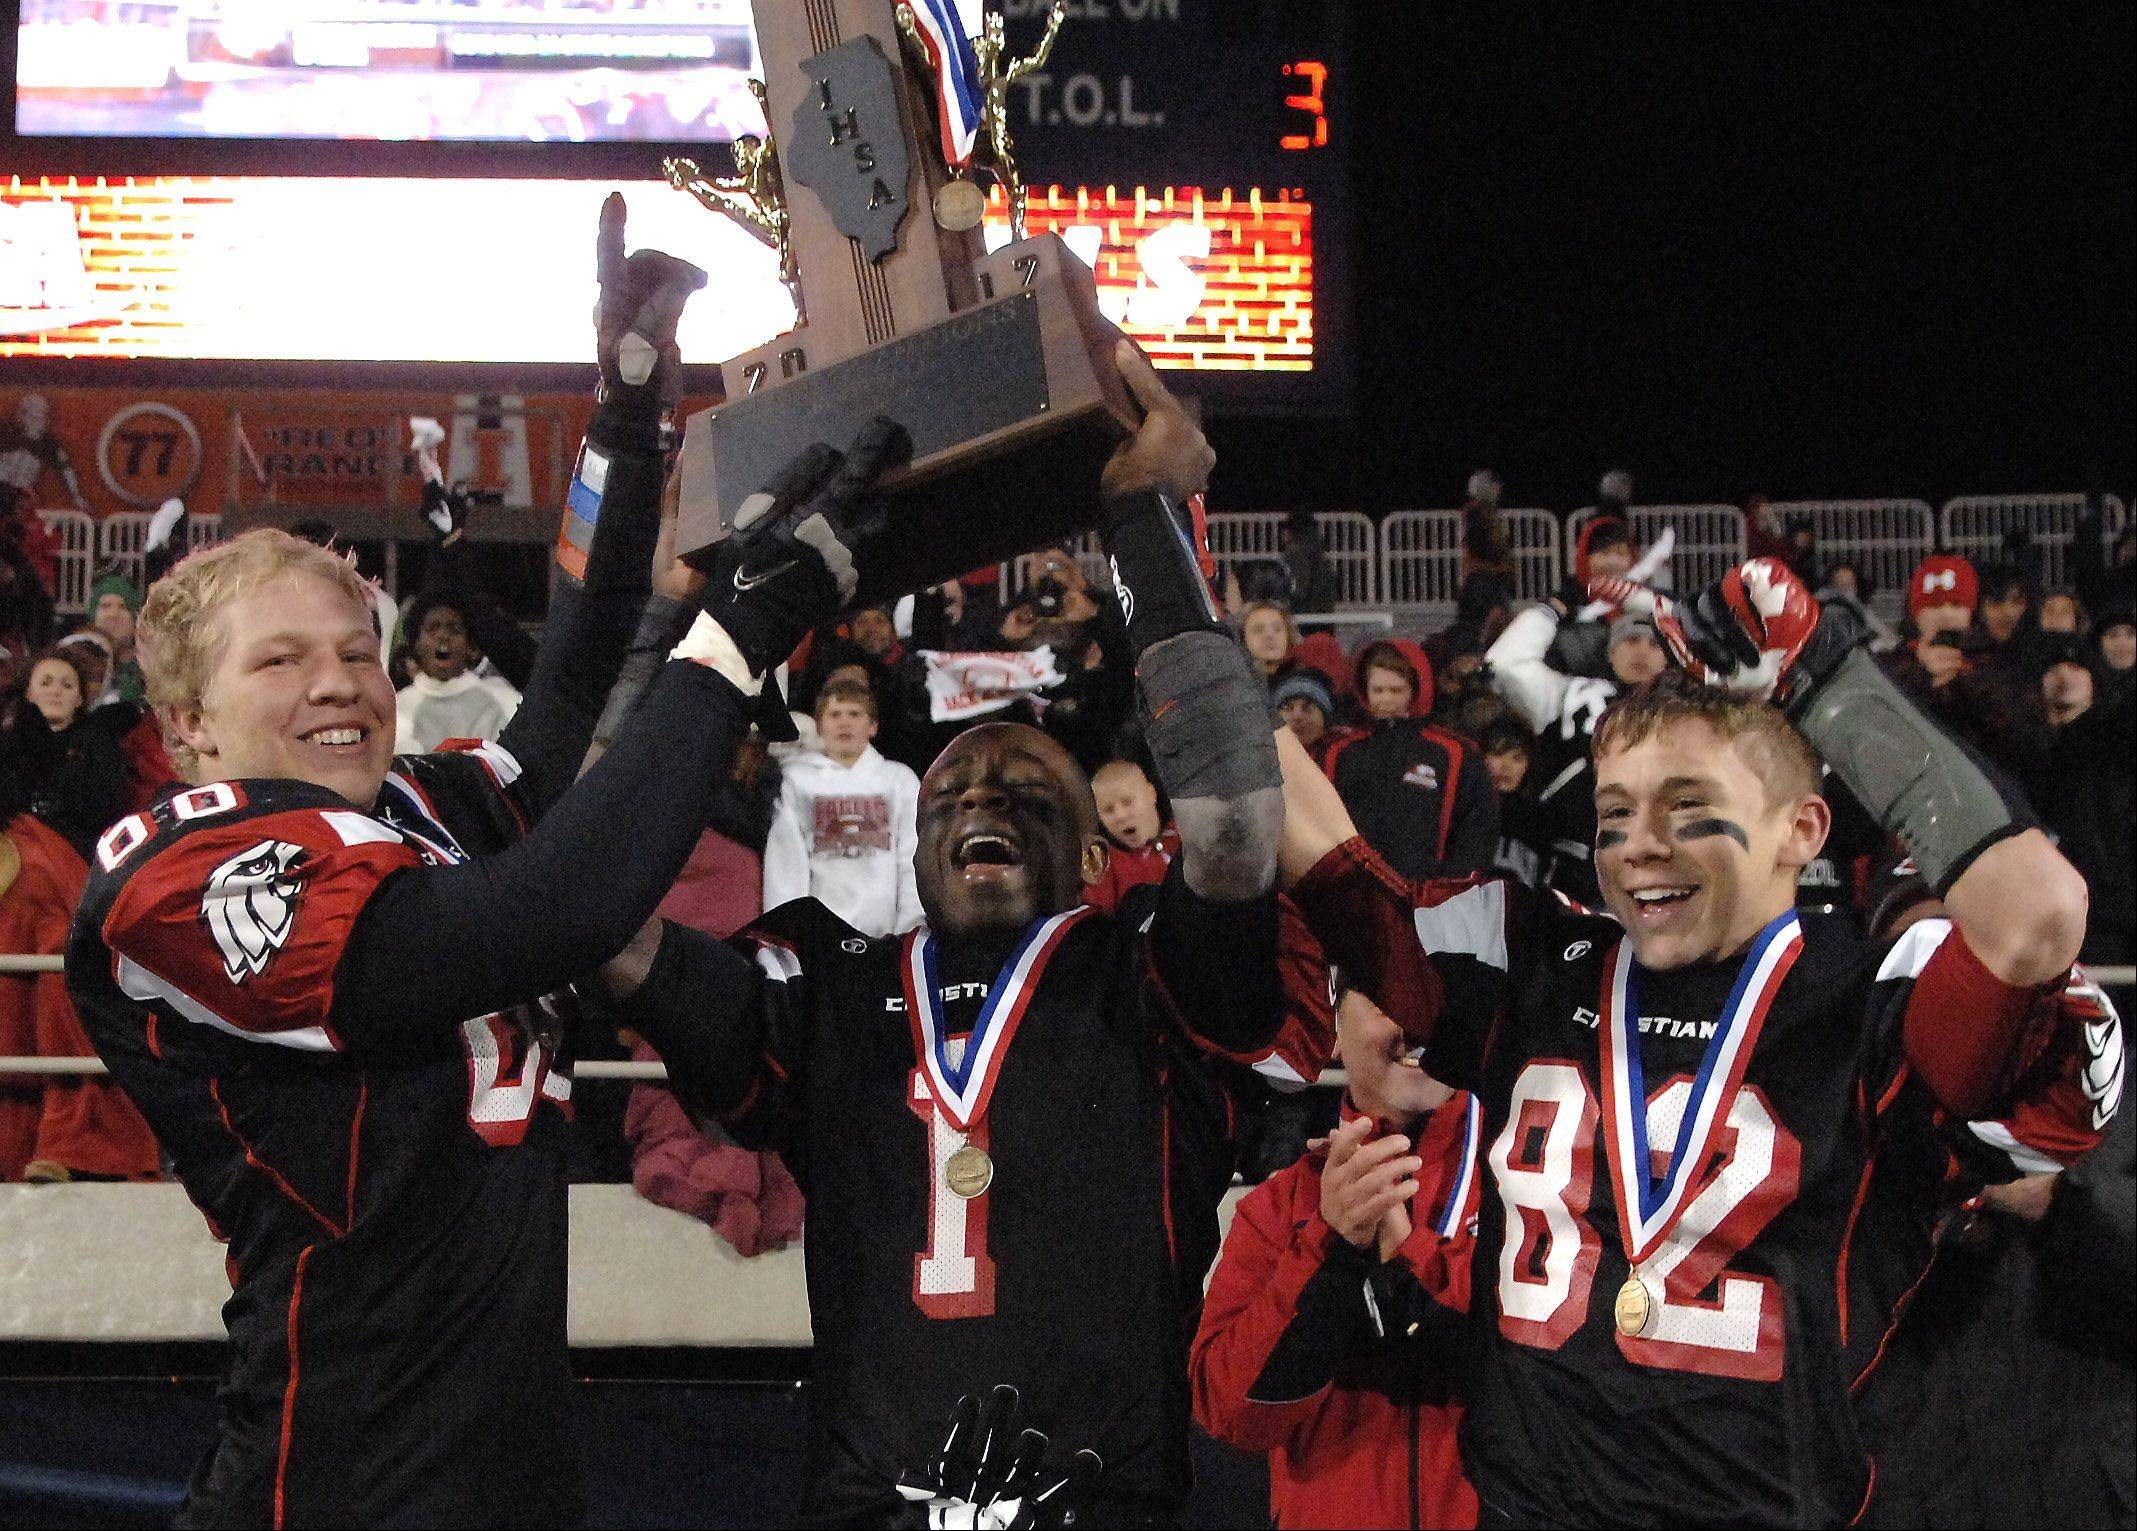 Aurora Christian captains Josh Kok, left, Brandon Mayes and Chad Beebe hold up the championship trophy after their win over Tolono Unity during Friday's Class 3A state championship game at Memorial Stadium in Champaign.